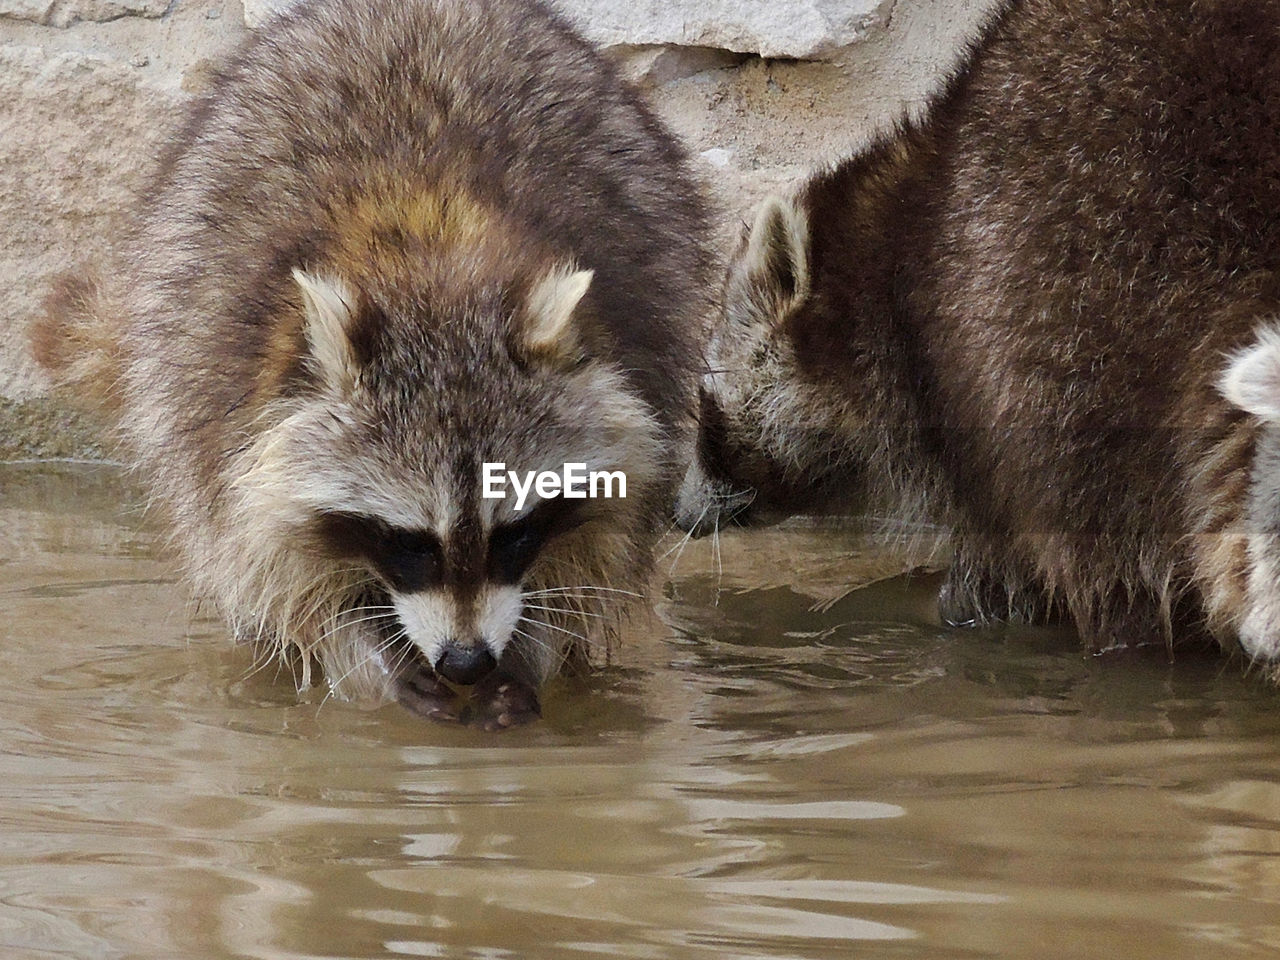 animals in the wild, animal wildlife, mammal, animal themes, one animal, water, waterfront, otter, no people, raccoon, outdoors, nature, day, close-up